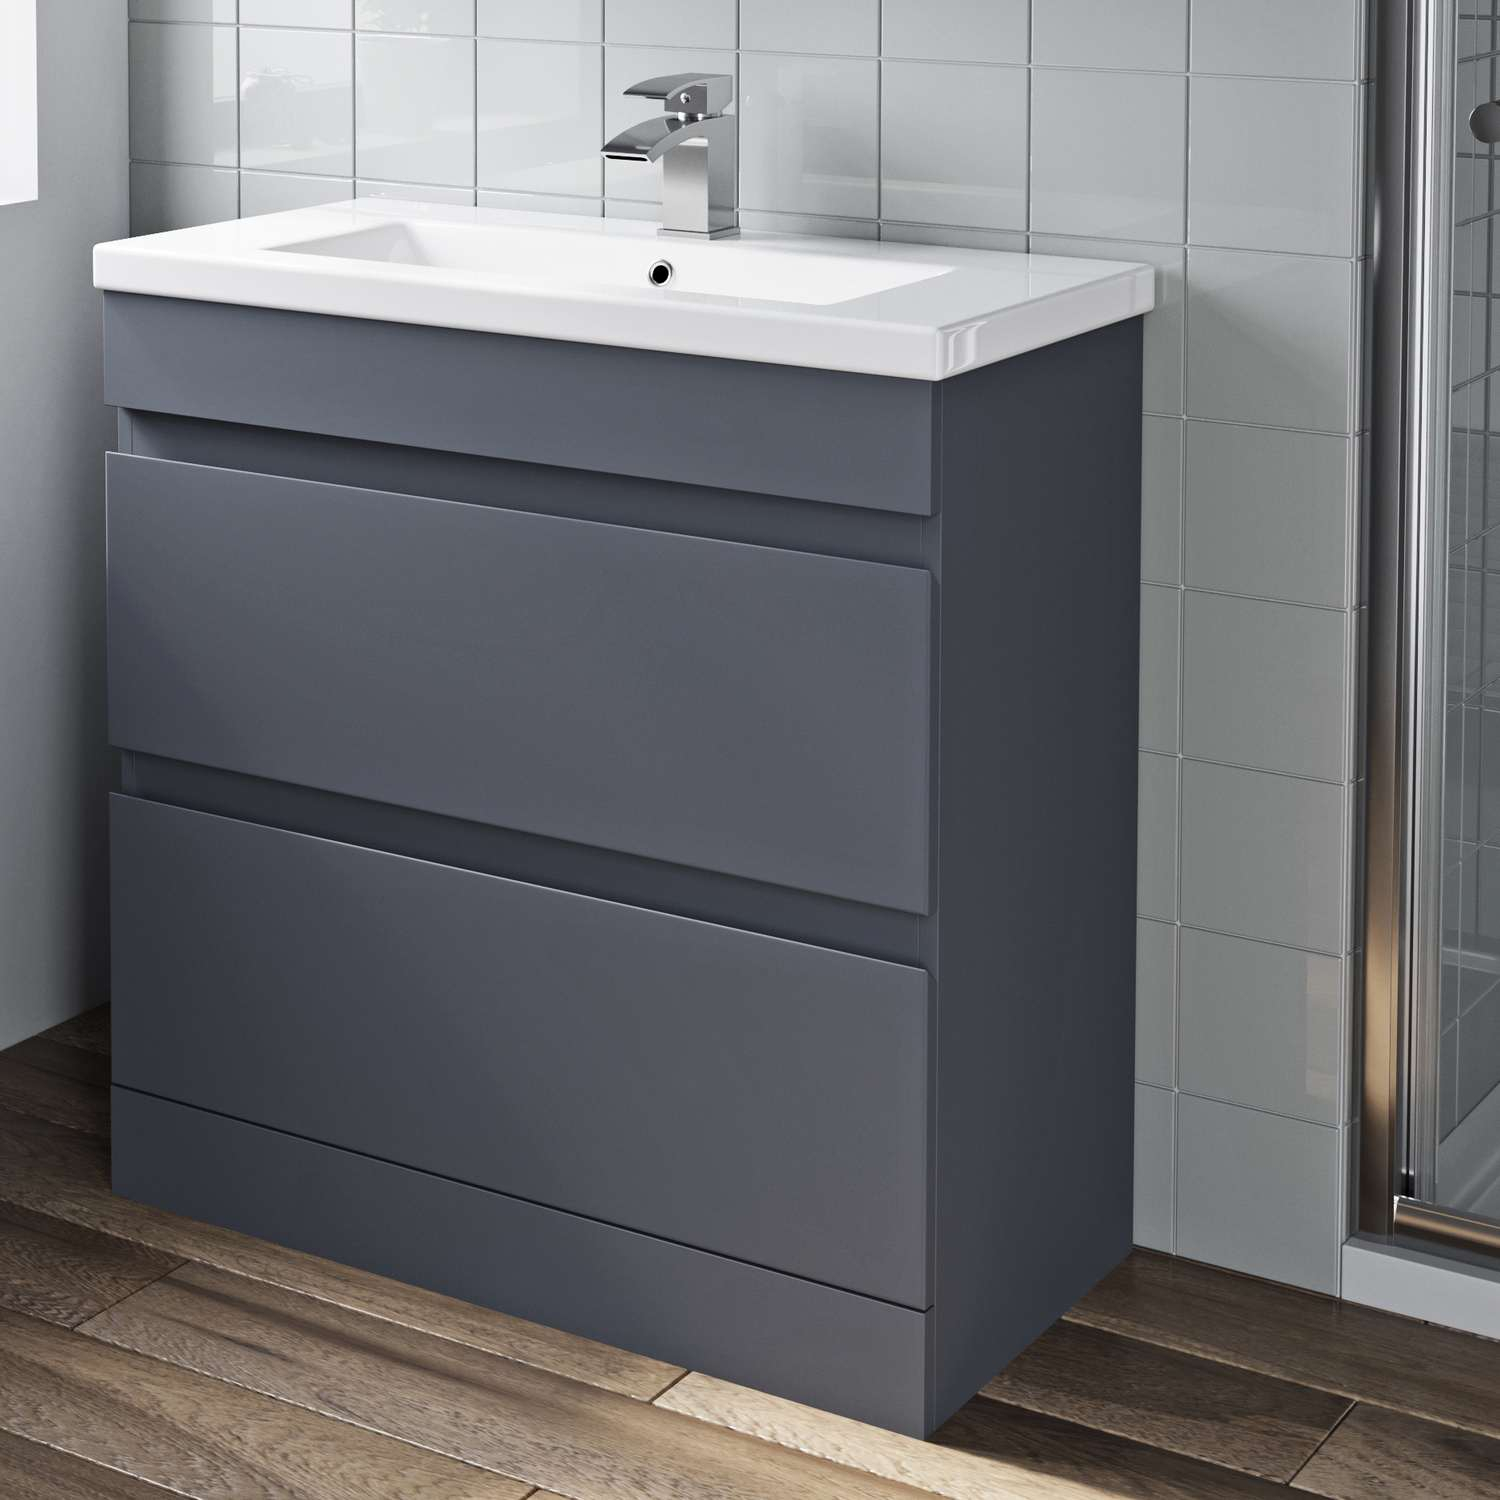 Details About 800mm Bathroom Vanity Unit Basin Storage 2 Drawer Cabinet Furniture Grey Gloss with regard to sizing 1500 X 1500